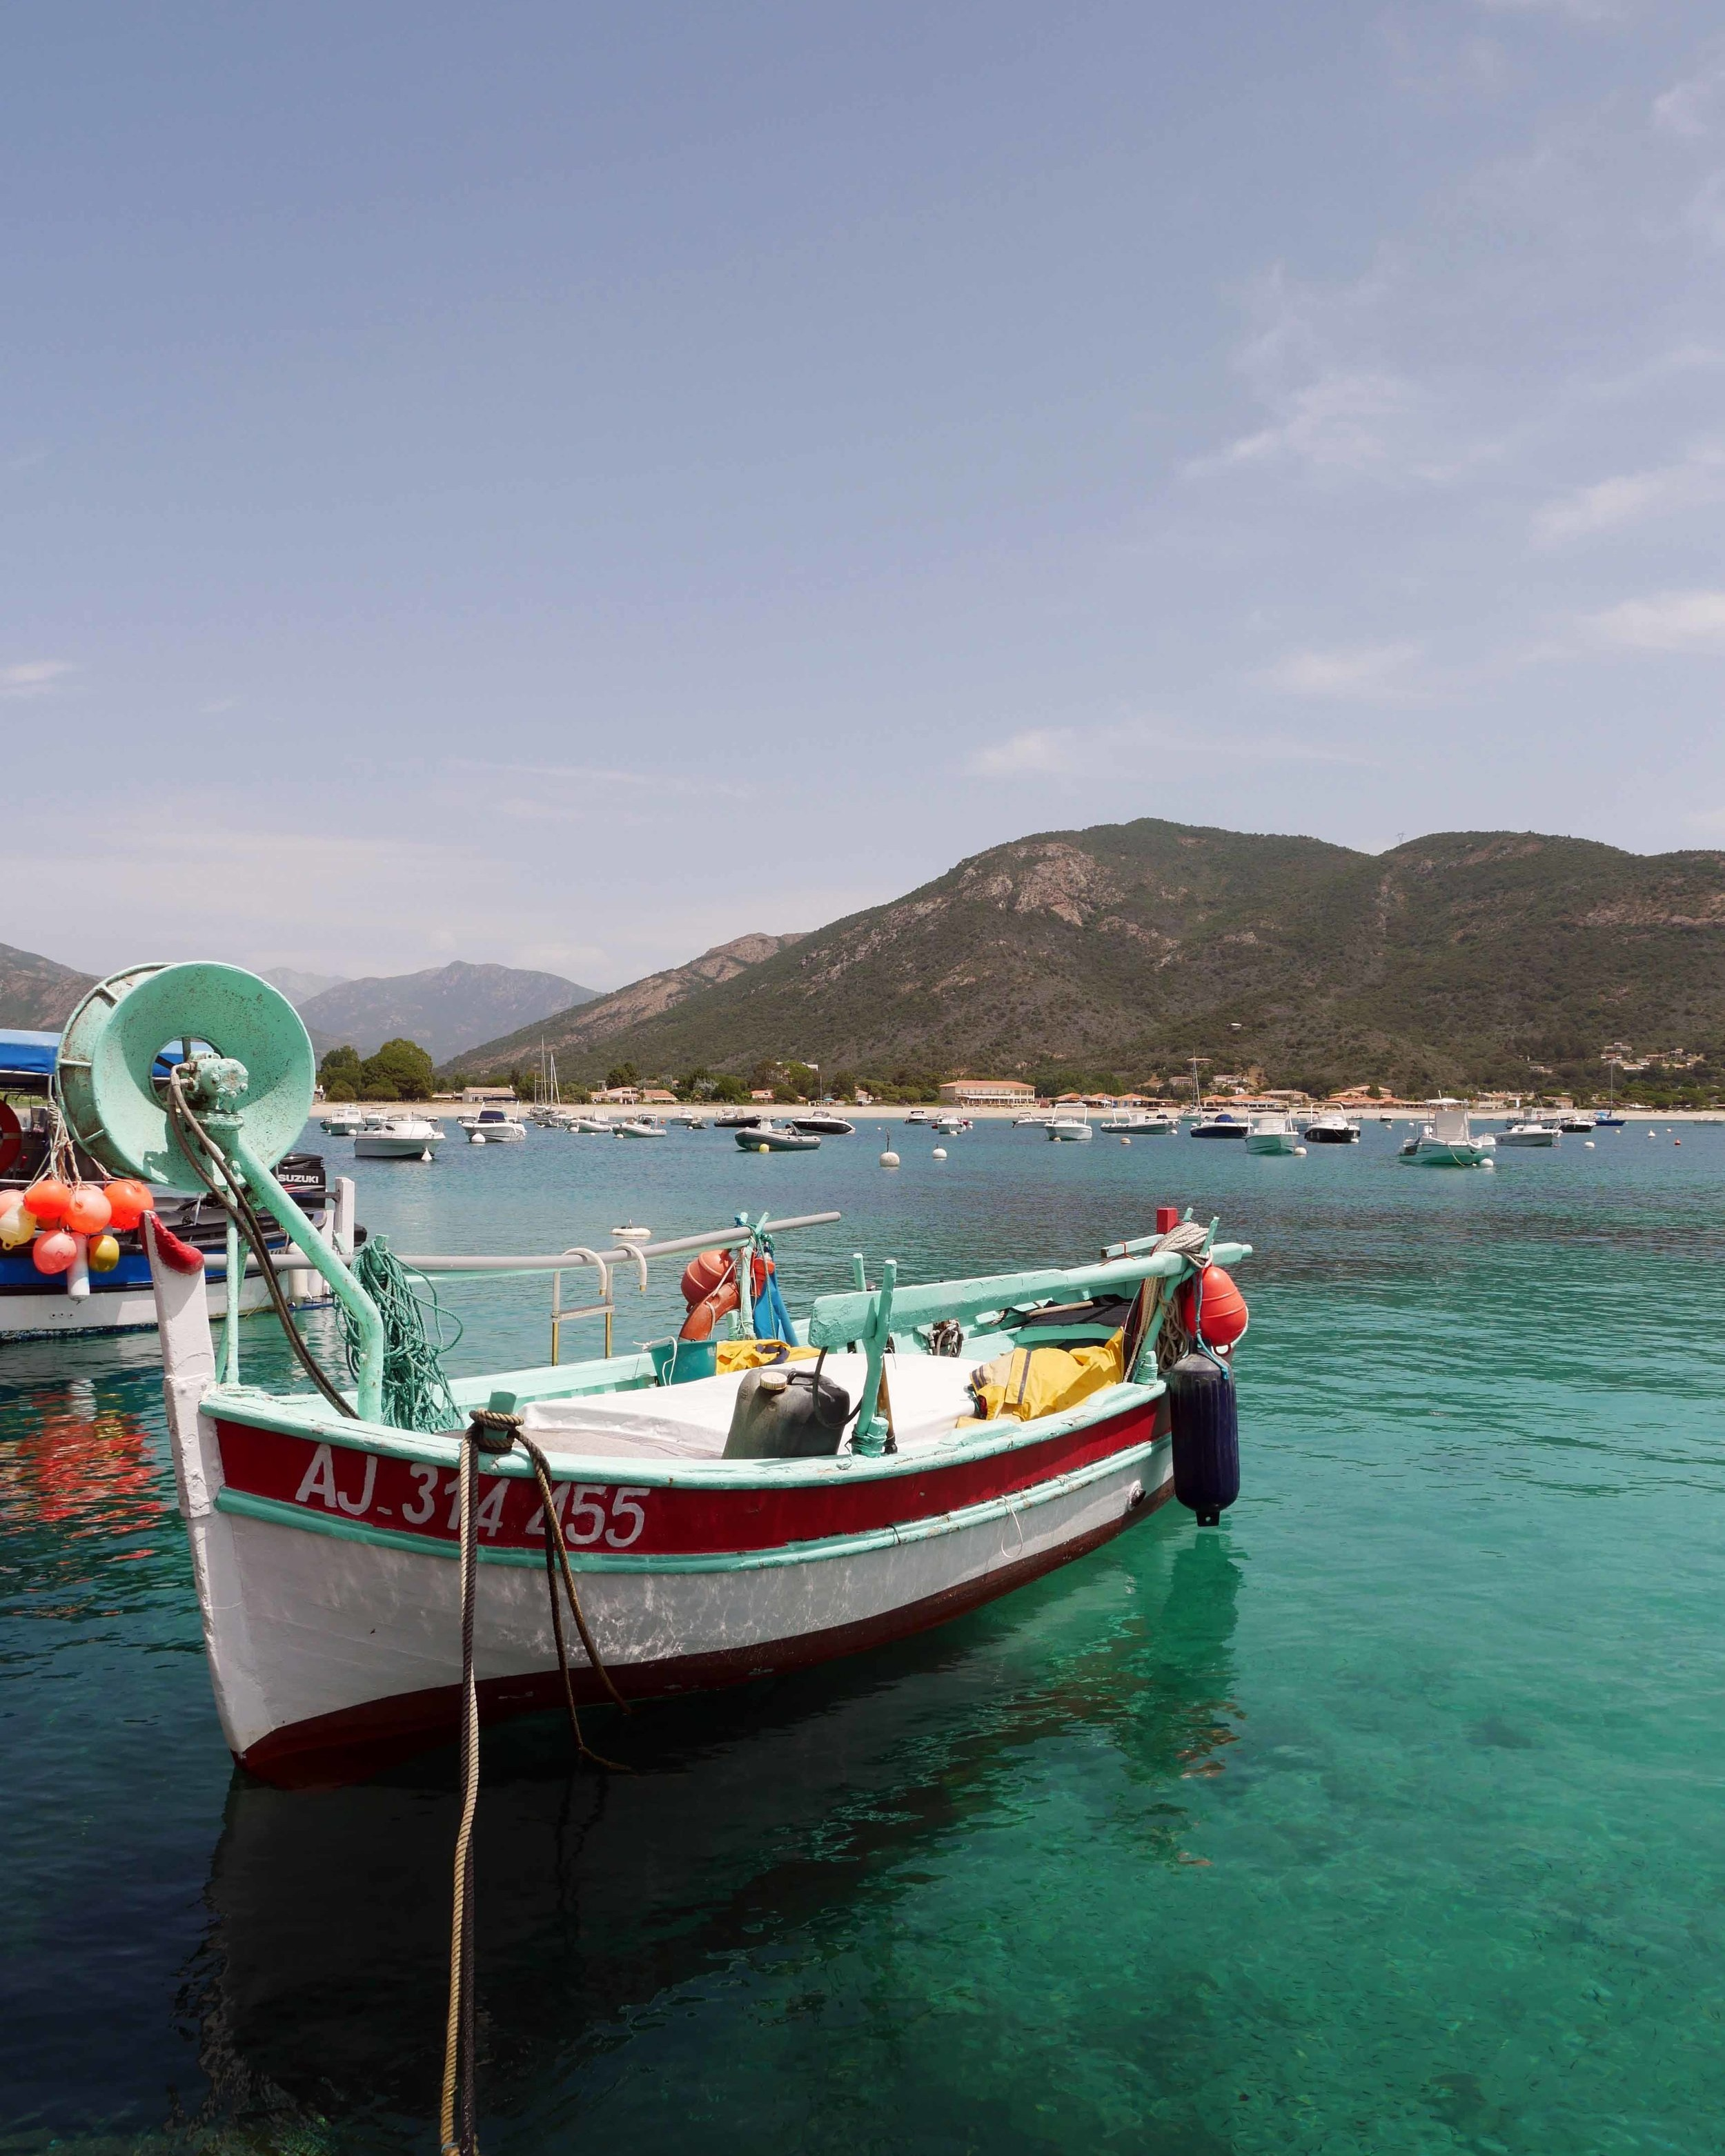 Taking a boat trip from Sagone, Corsica where the waters are bluer than blue